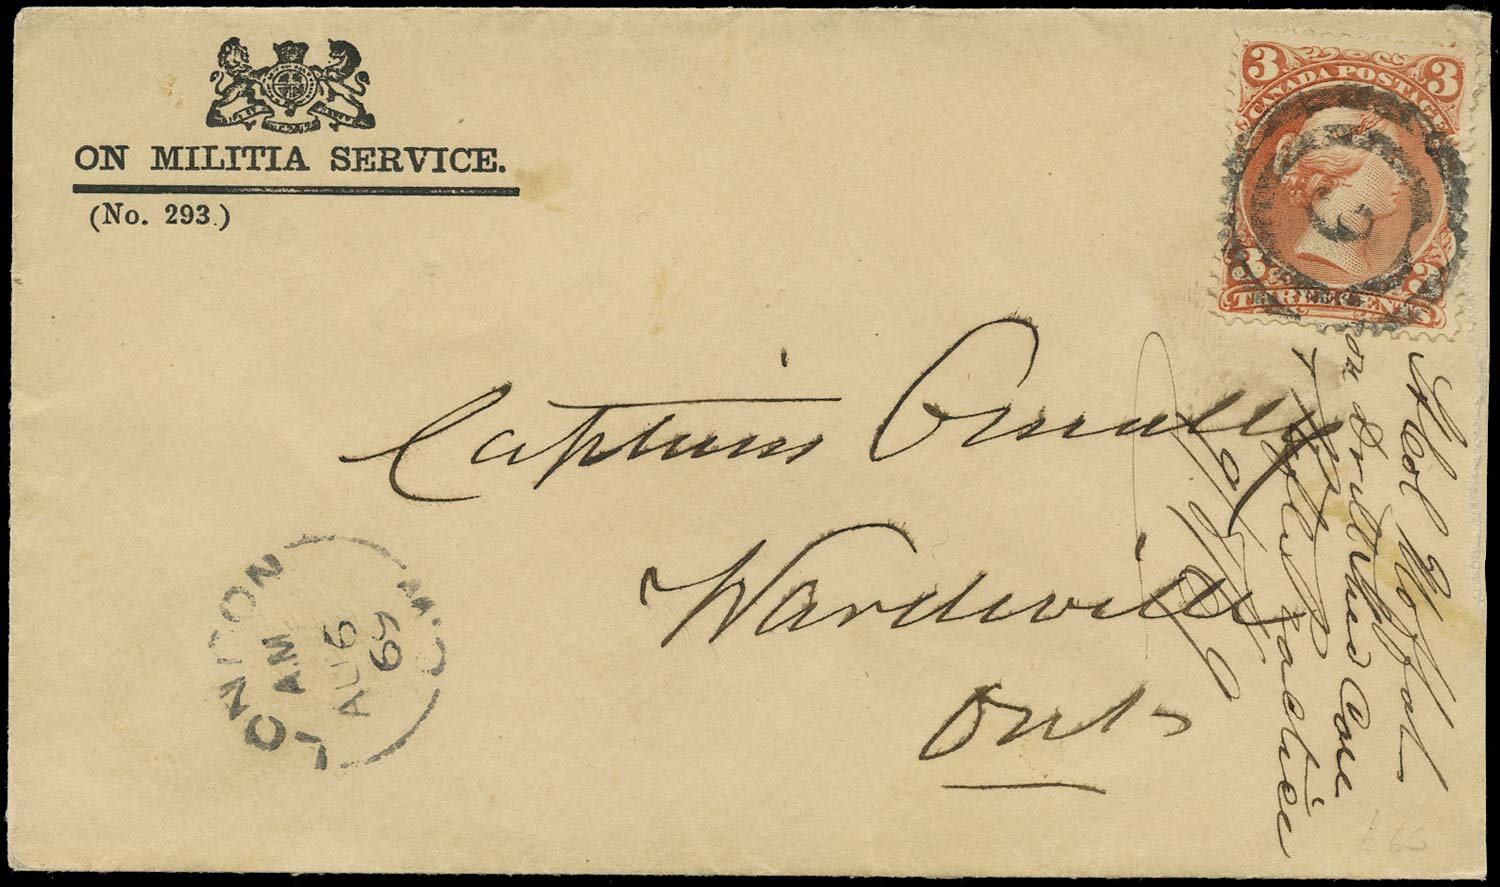 CANADA 1869  SG58 Cover On Militia Service from London to Wardsville